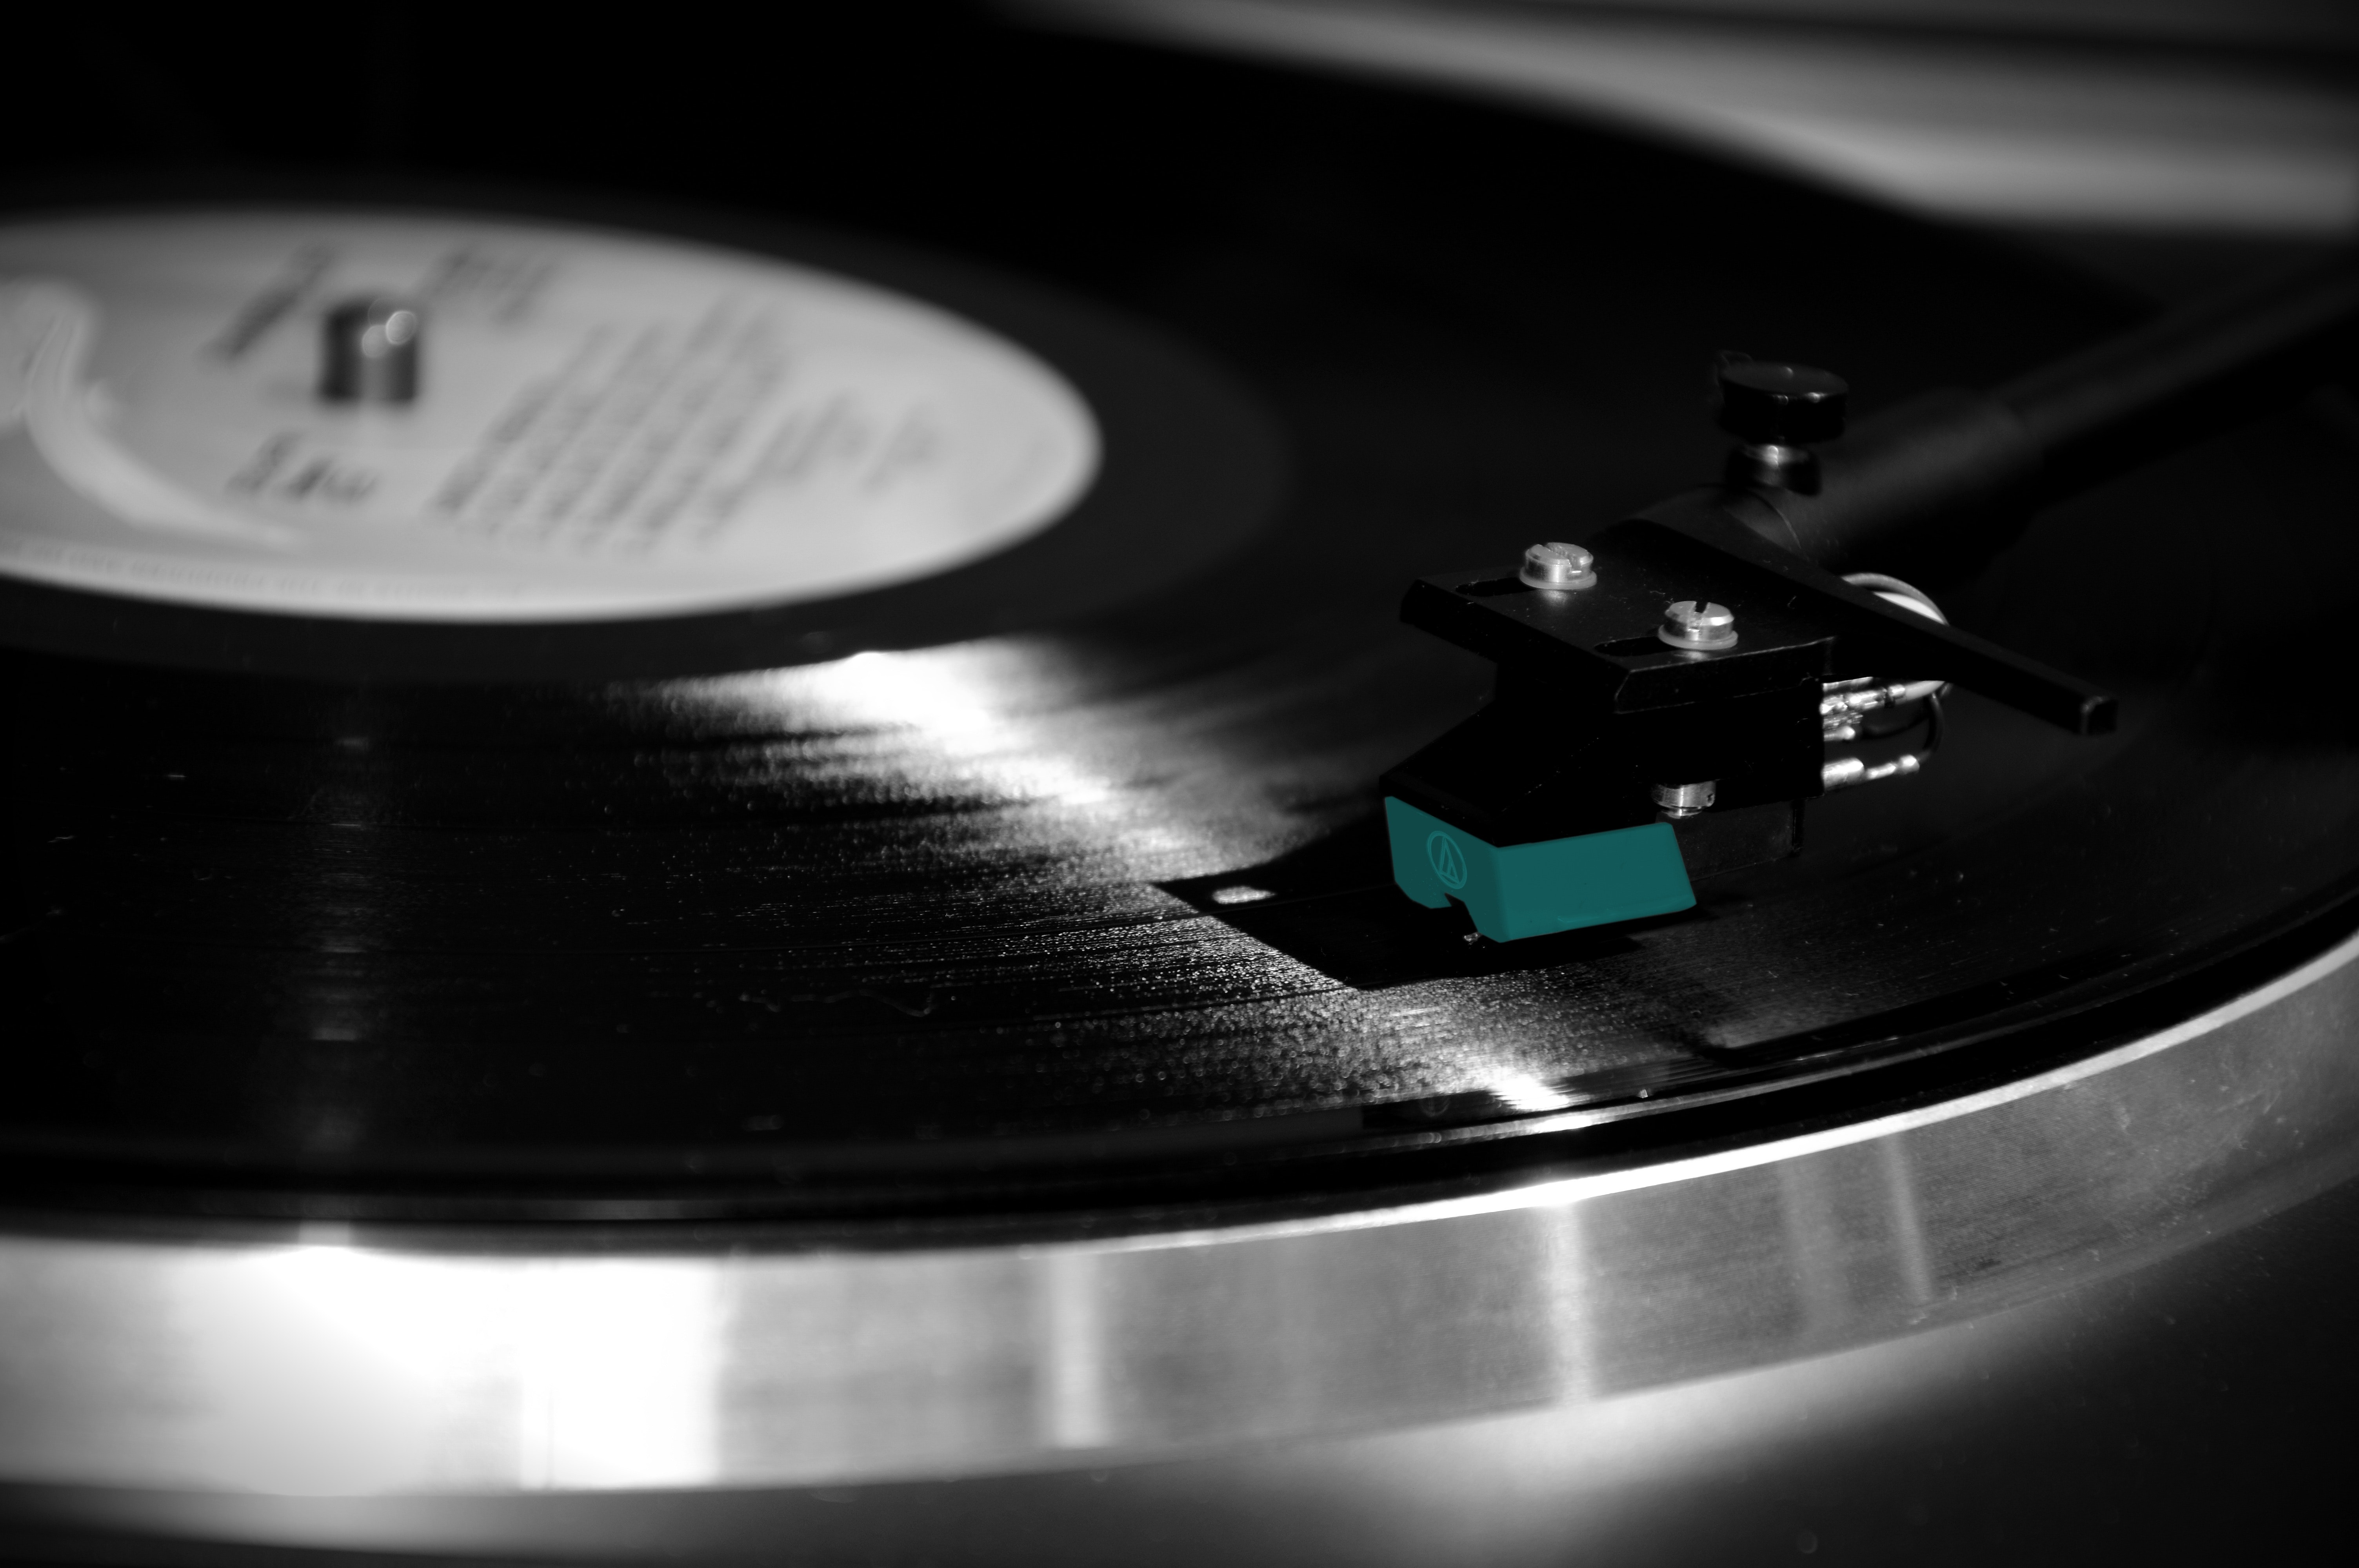 Black and Silver Turntable, Data, Mono, Play, Record, HQ Photo